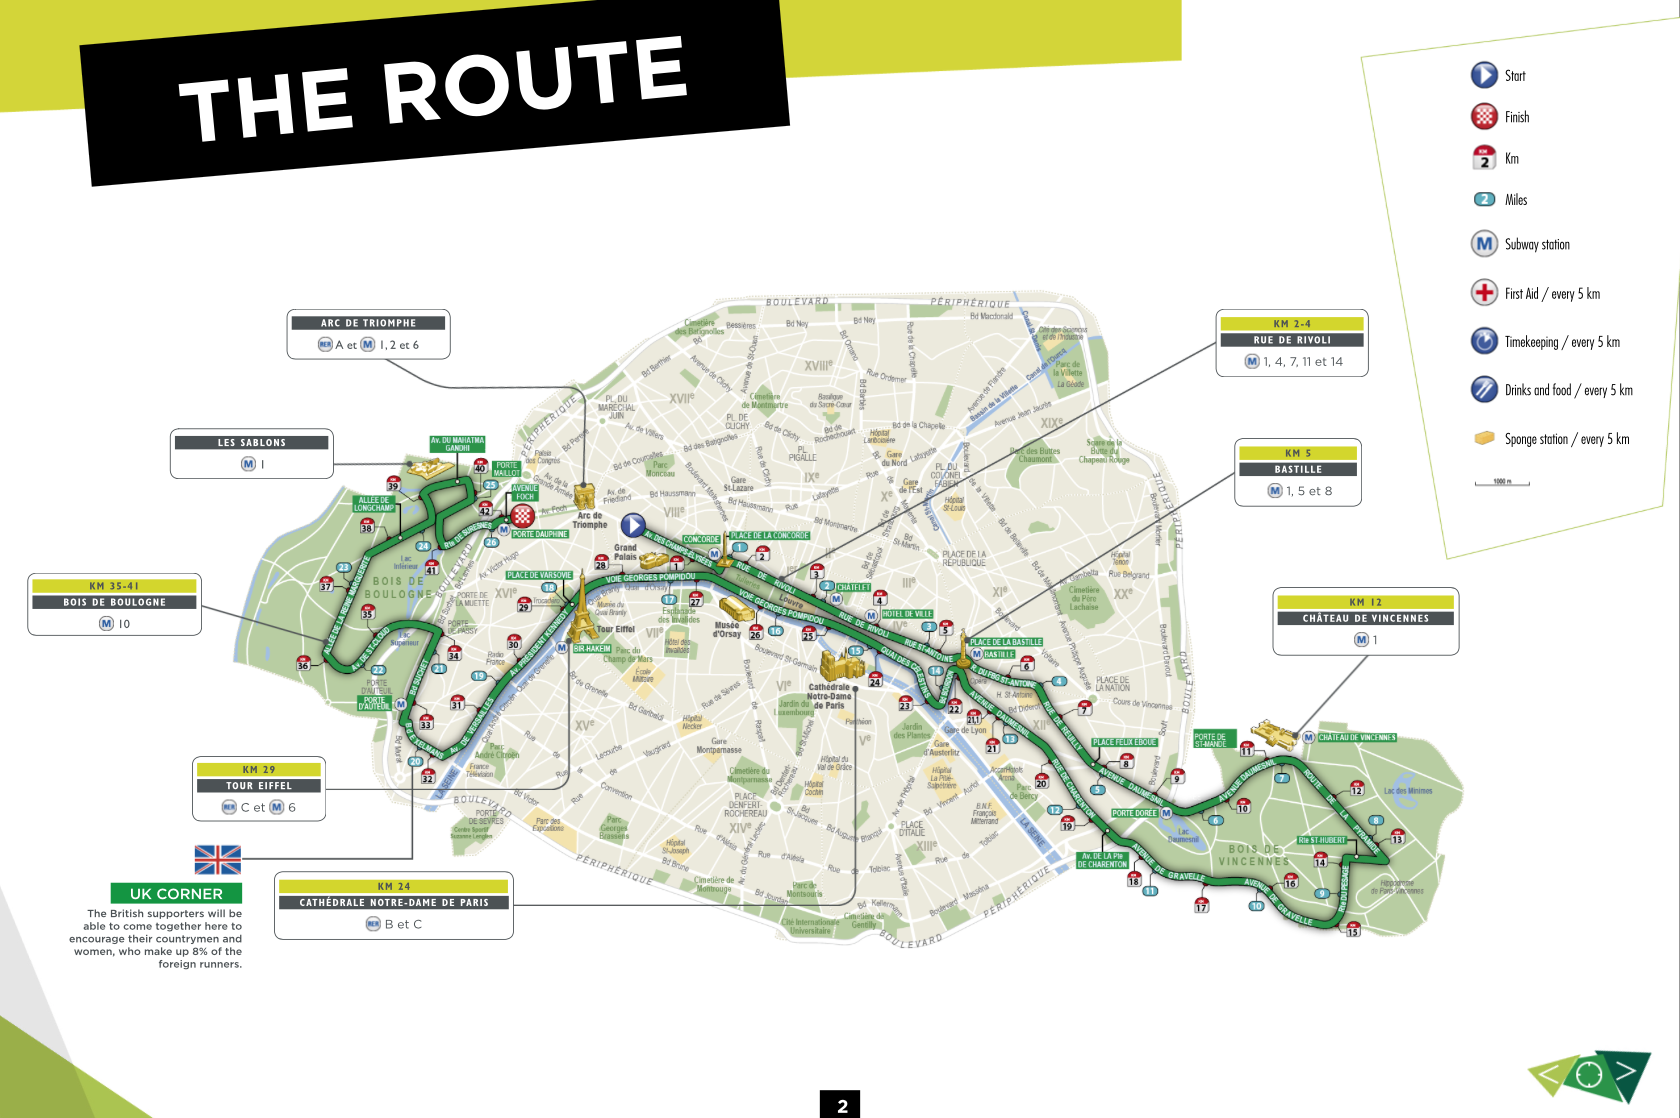 Paris Marathon 2018 route